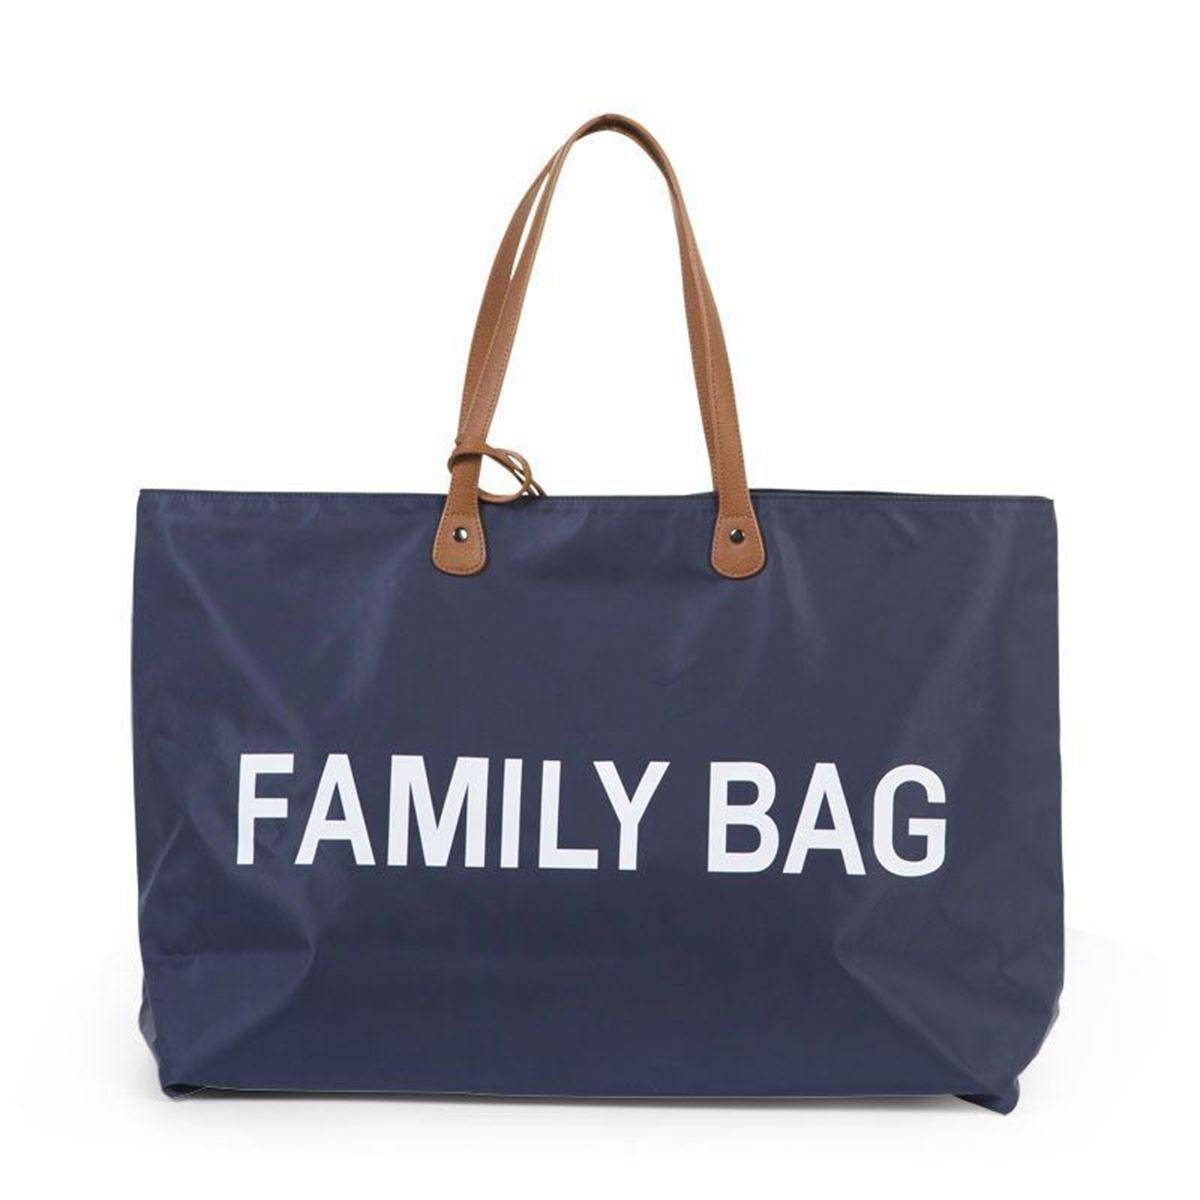 Childhome Family Bag, Navy